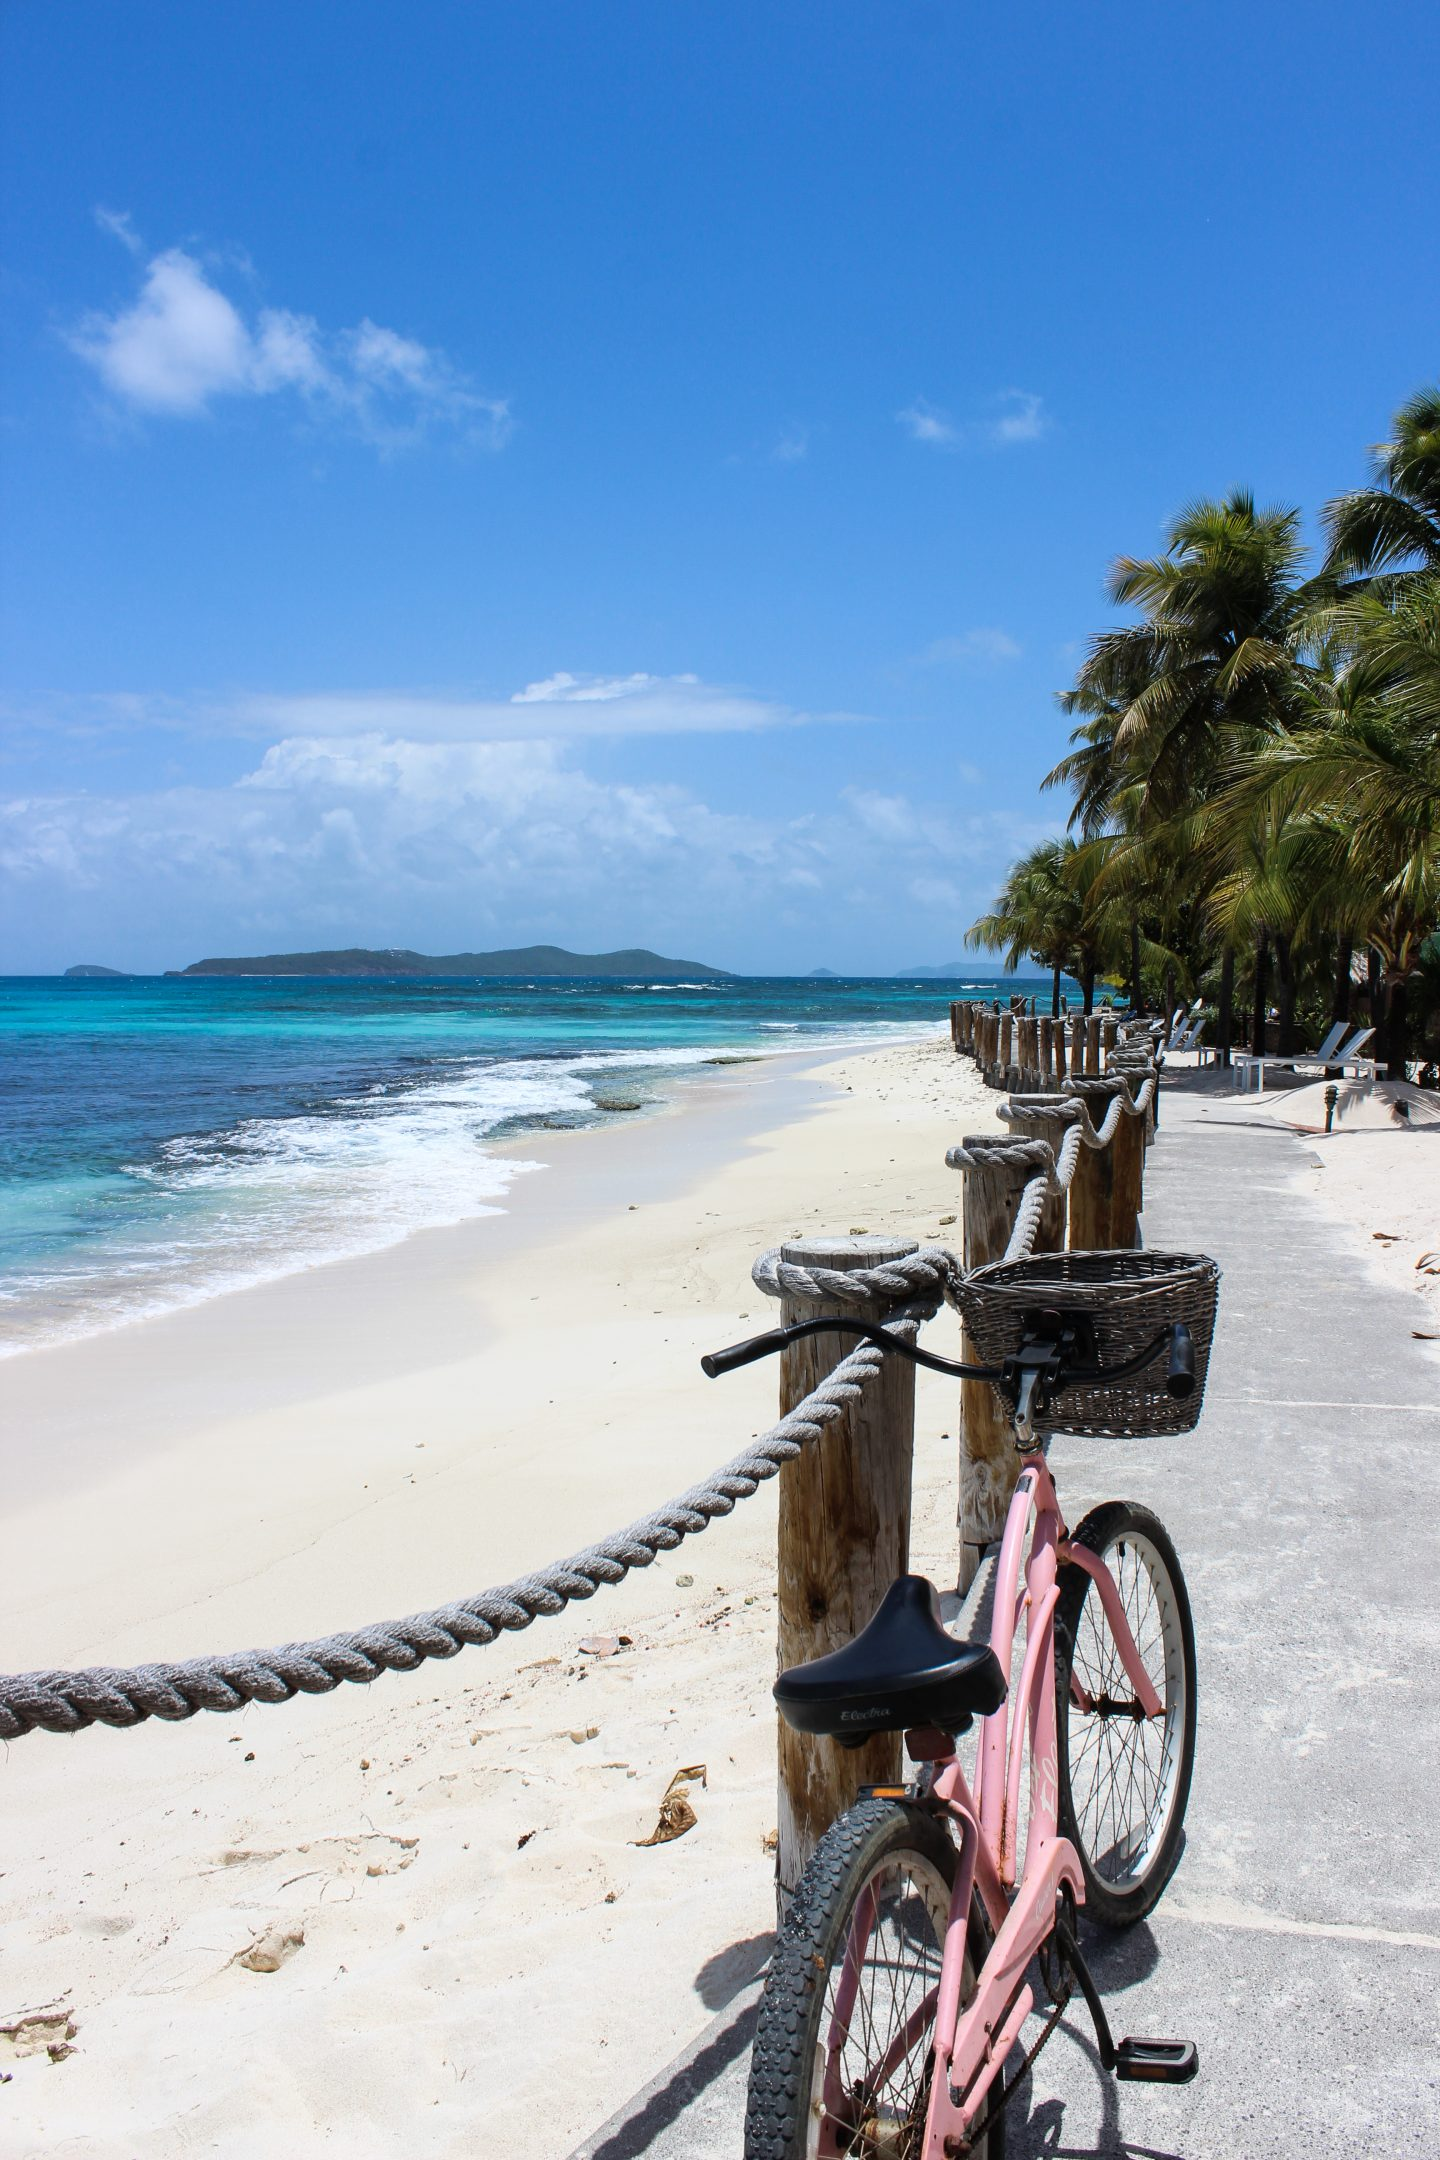 Clutch and carry on - UK Travel blogger - palm island resort, grenadines (109 of 361)